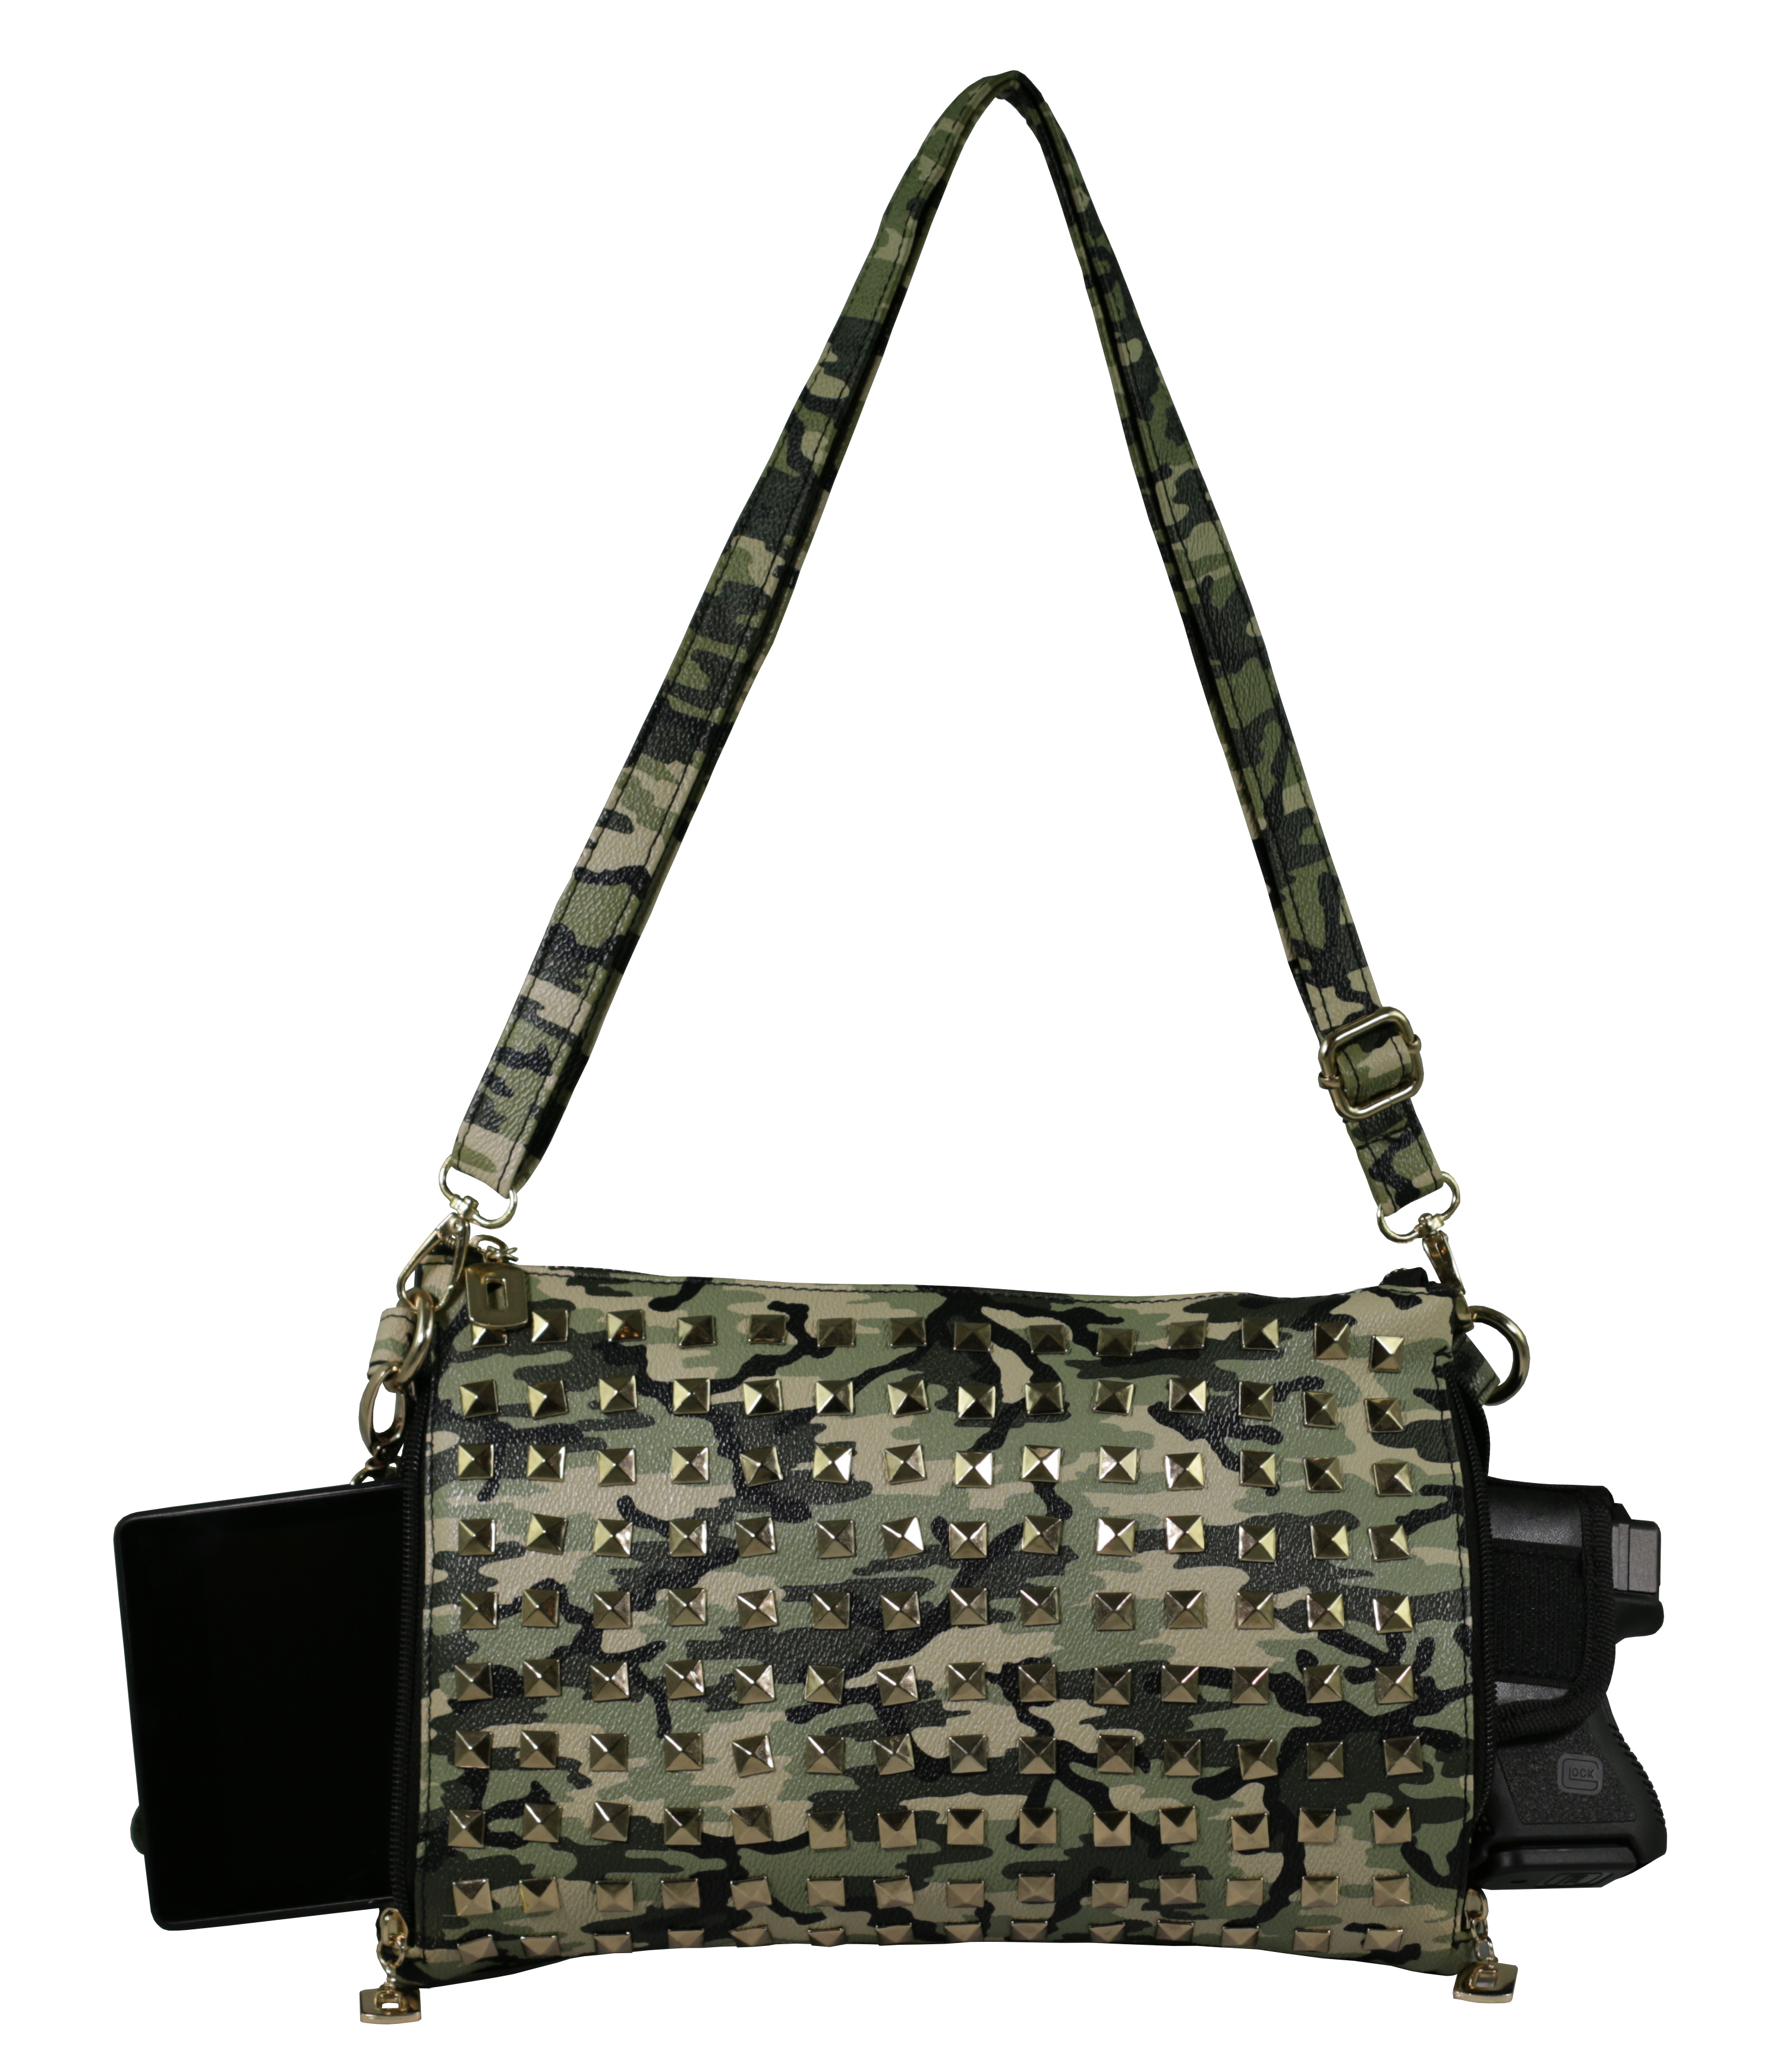 Green Camo Studded <br> Crossbody/Clutch/Shoulder <br> Concealed Carry Handbag <br> with Custom Holster